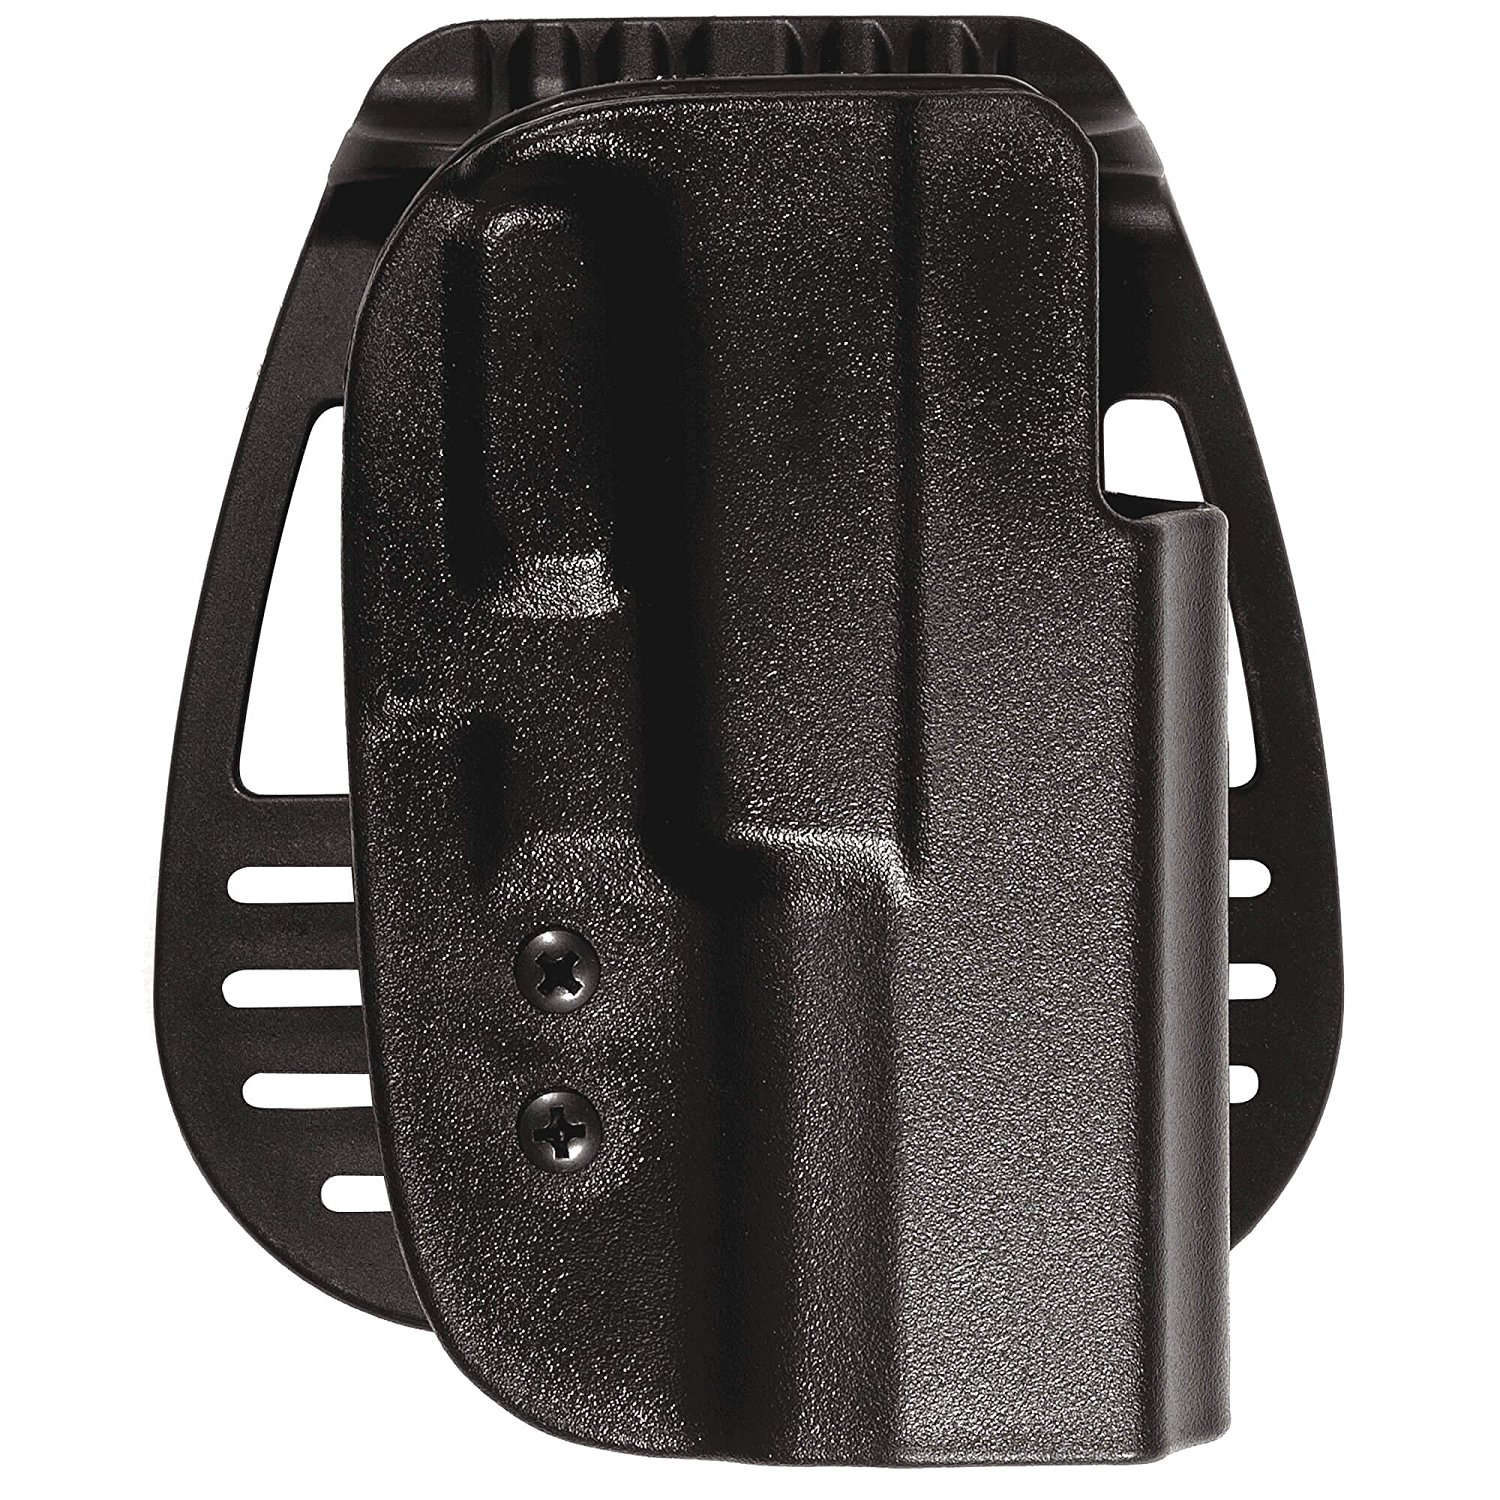 Uncle Mike's Tactical Kydex Open Top Hip Holster with Paddle and Belt Loop Accessories, Black